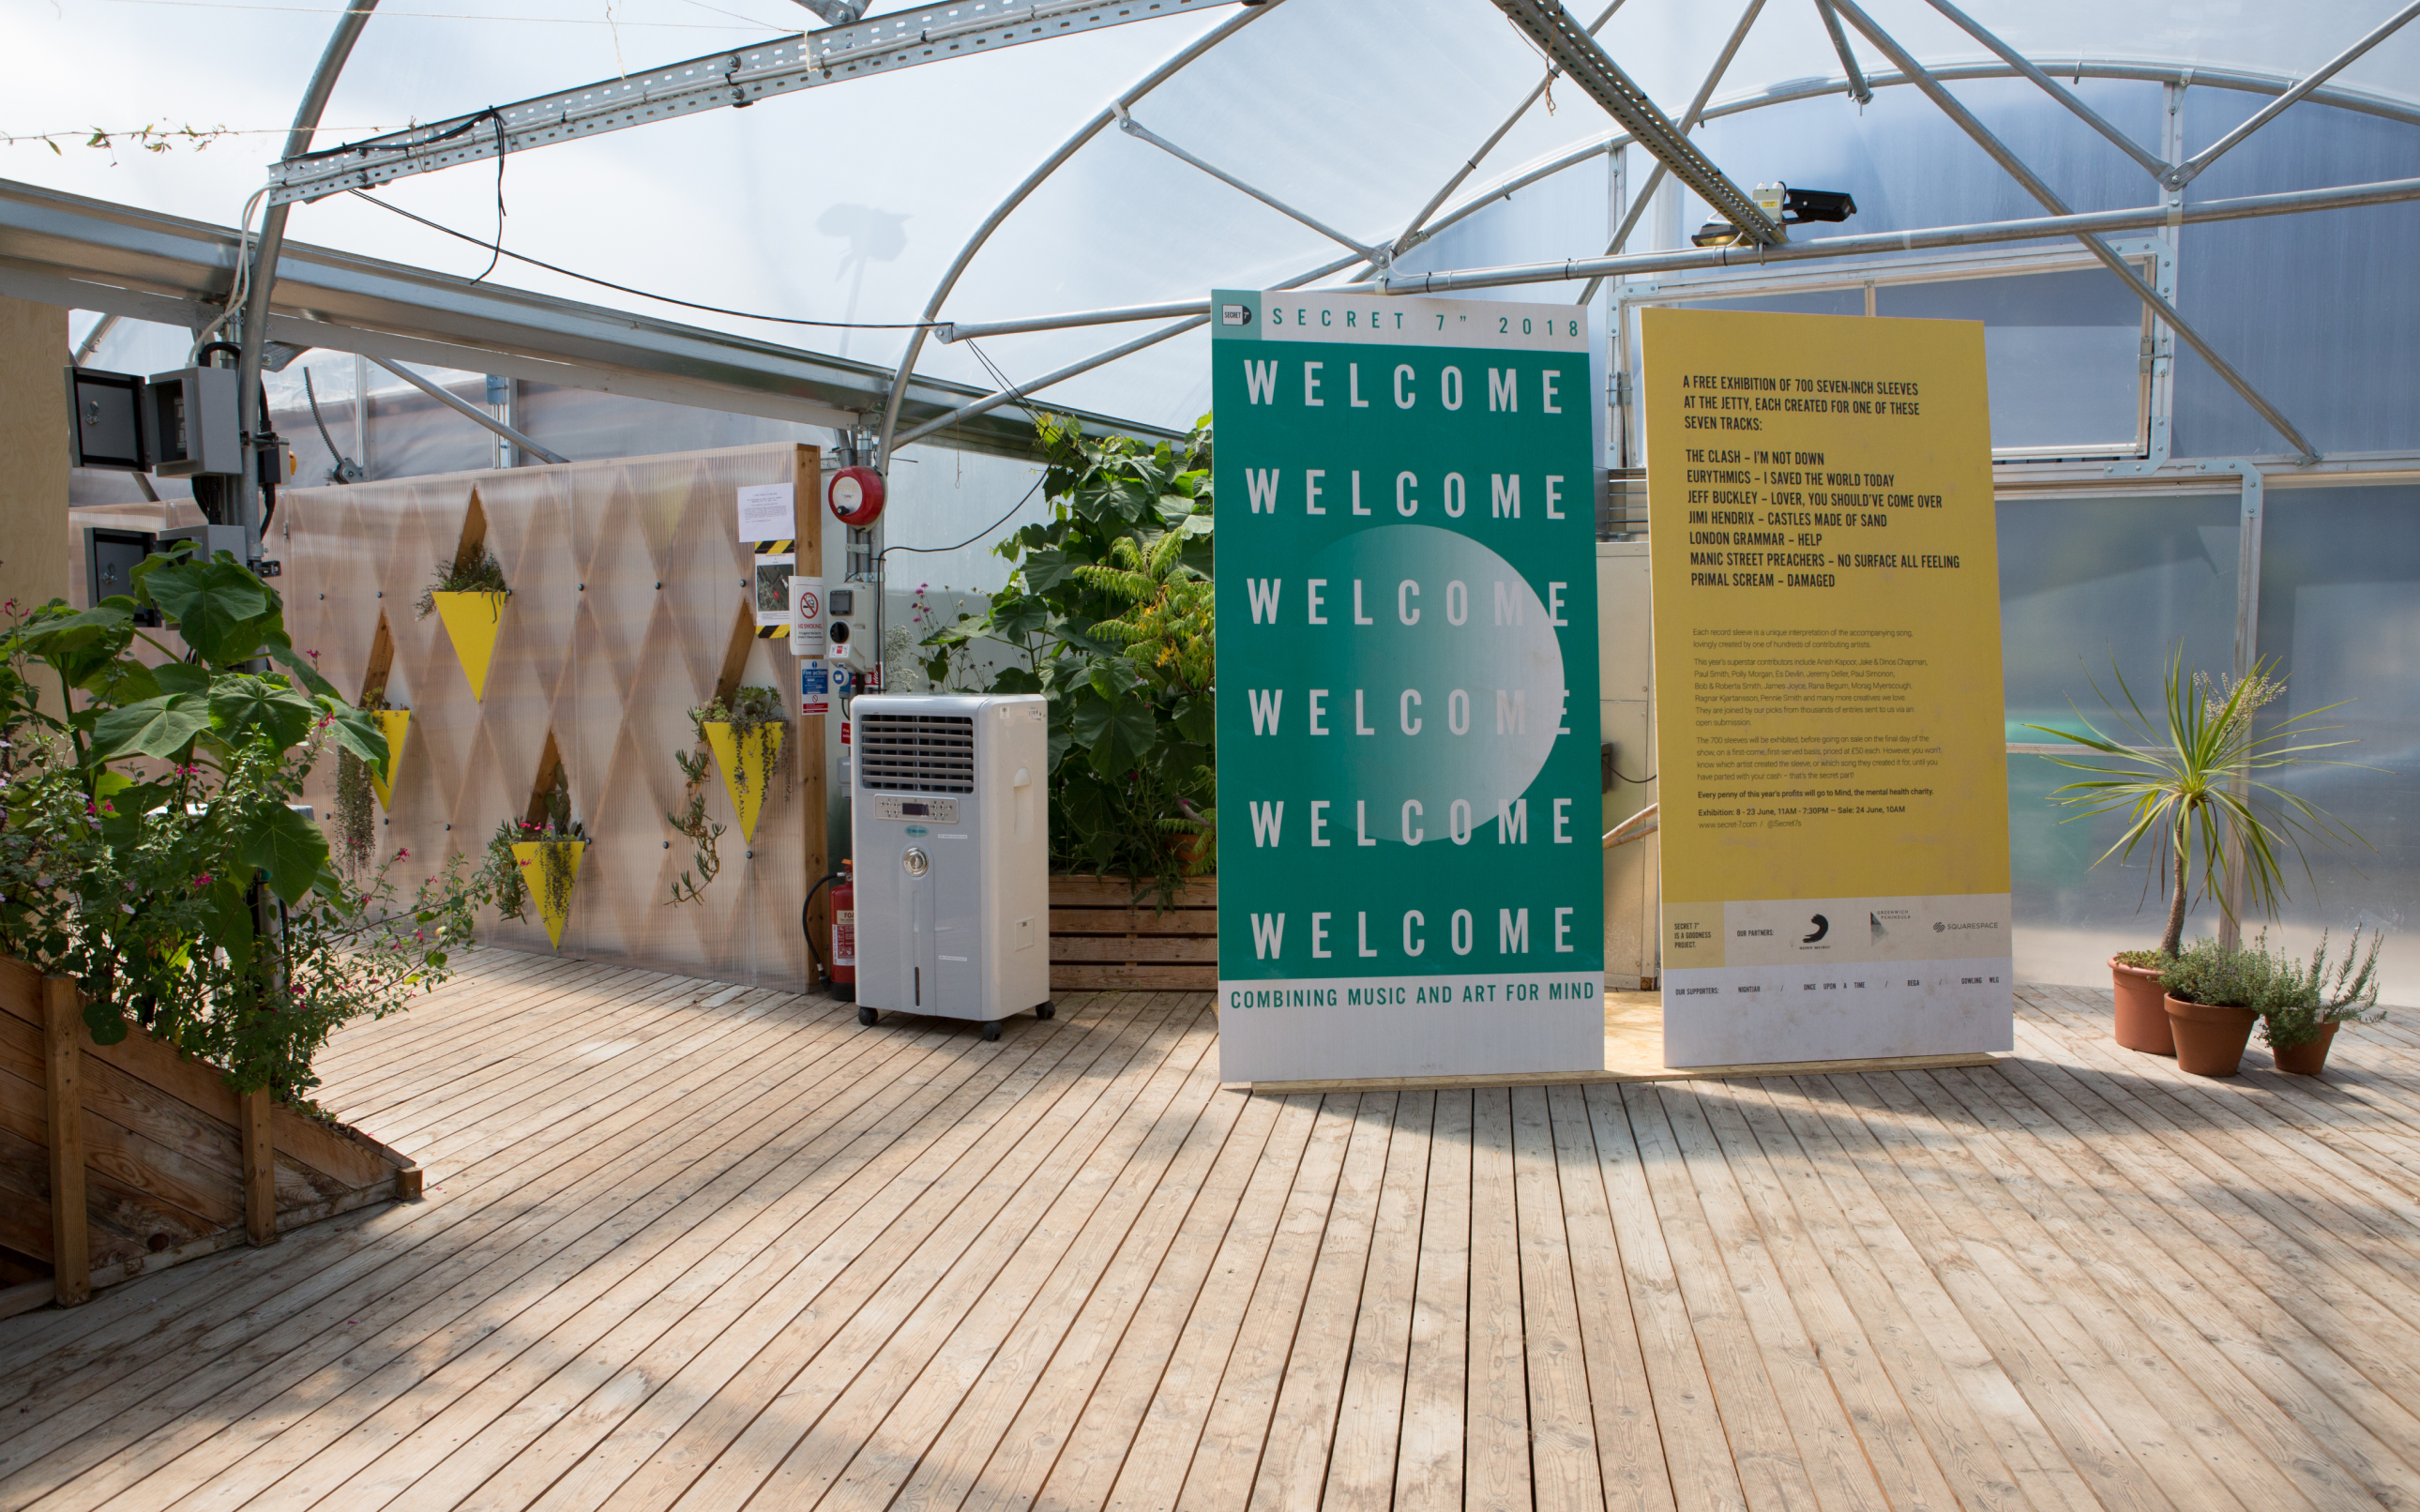 "The Secret7"" exhibition welcome banners in an outdoor area"